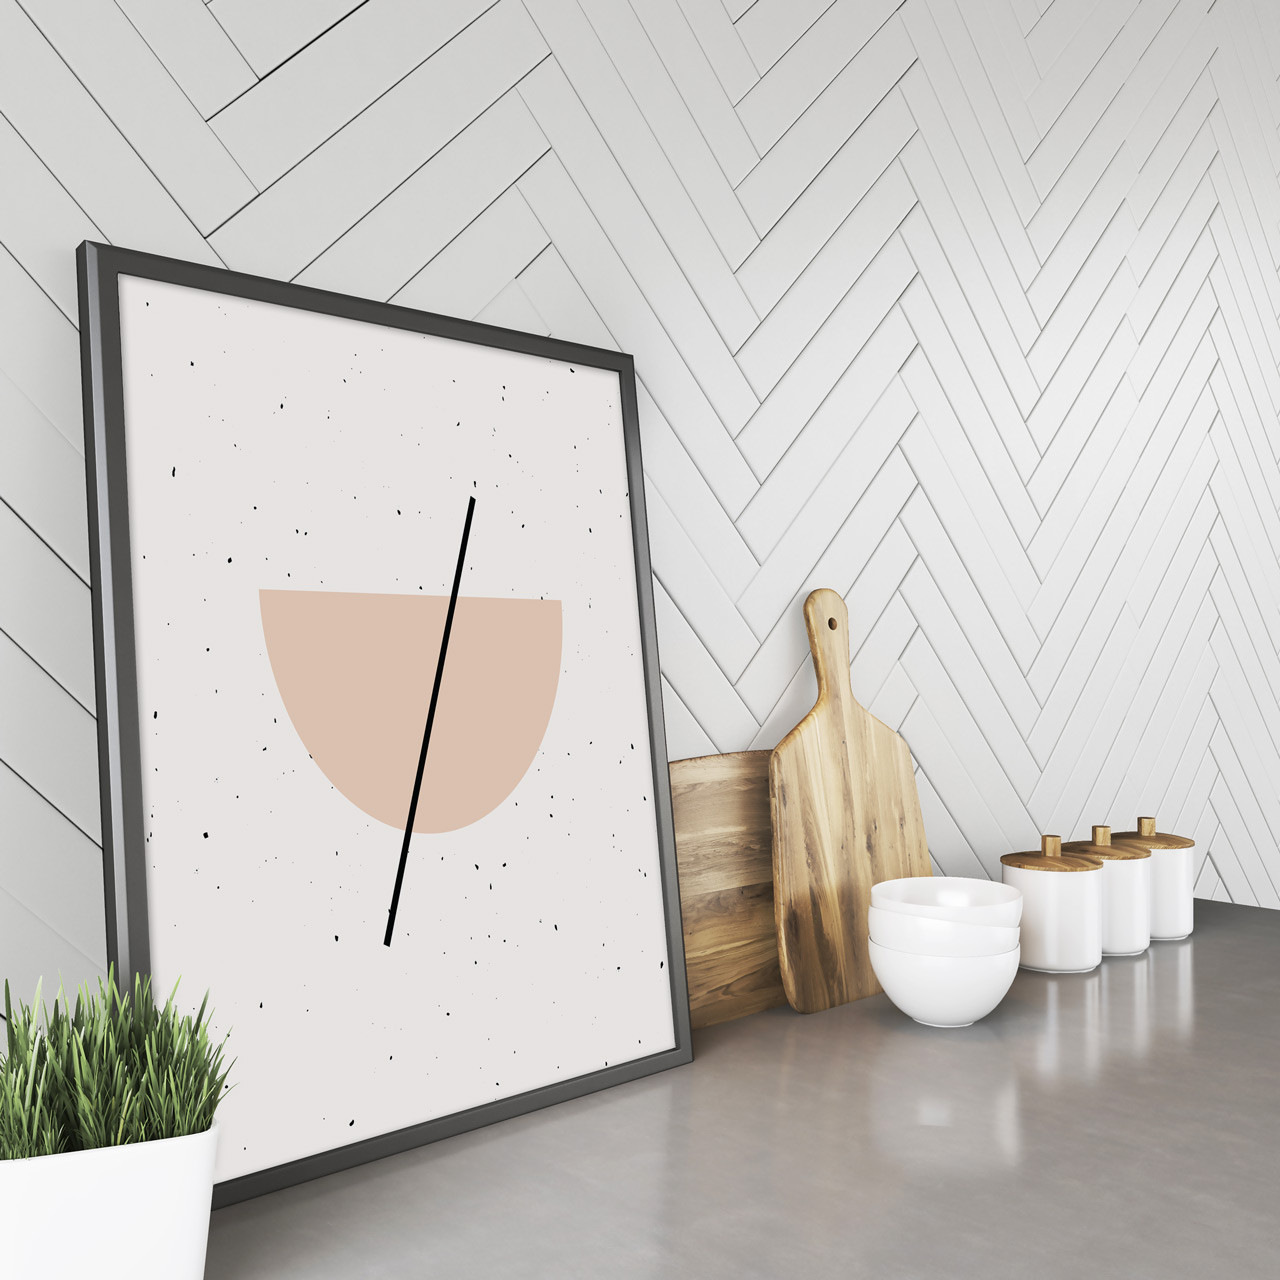 'Half Circle' Minimalist Geometric Art Print from The Printed Home (Printable)